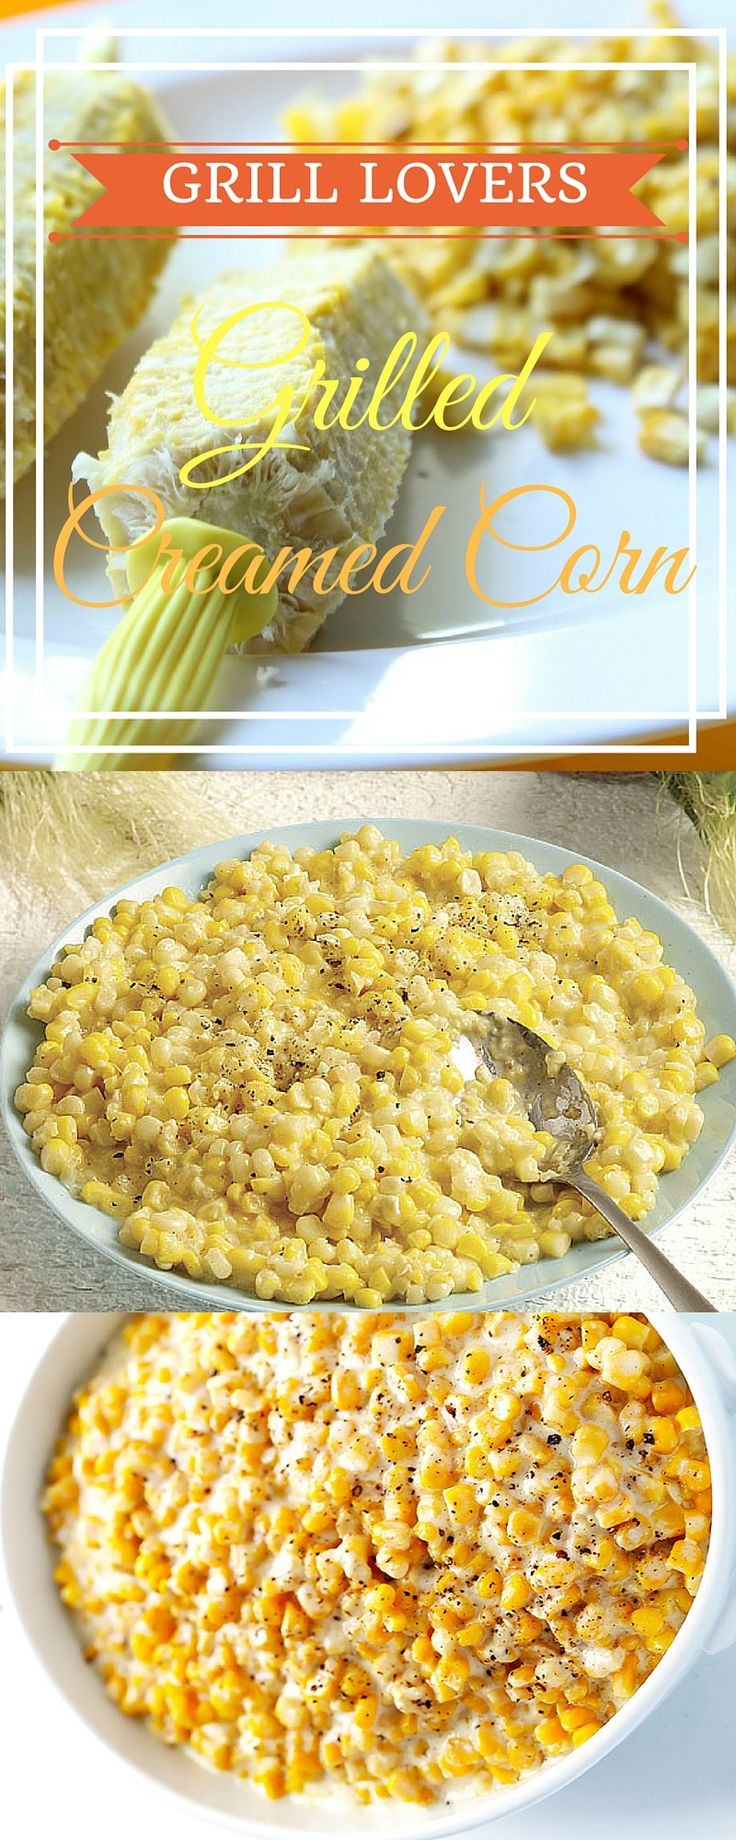 Grill Lovers' Amazing Grilled Creamed Corn Recipes I